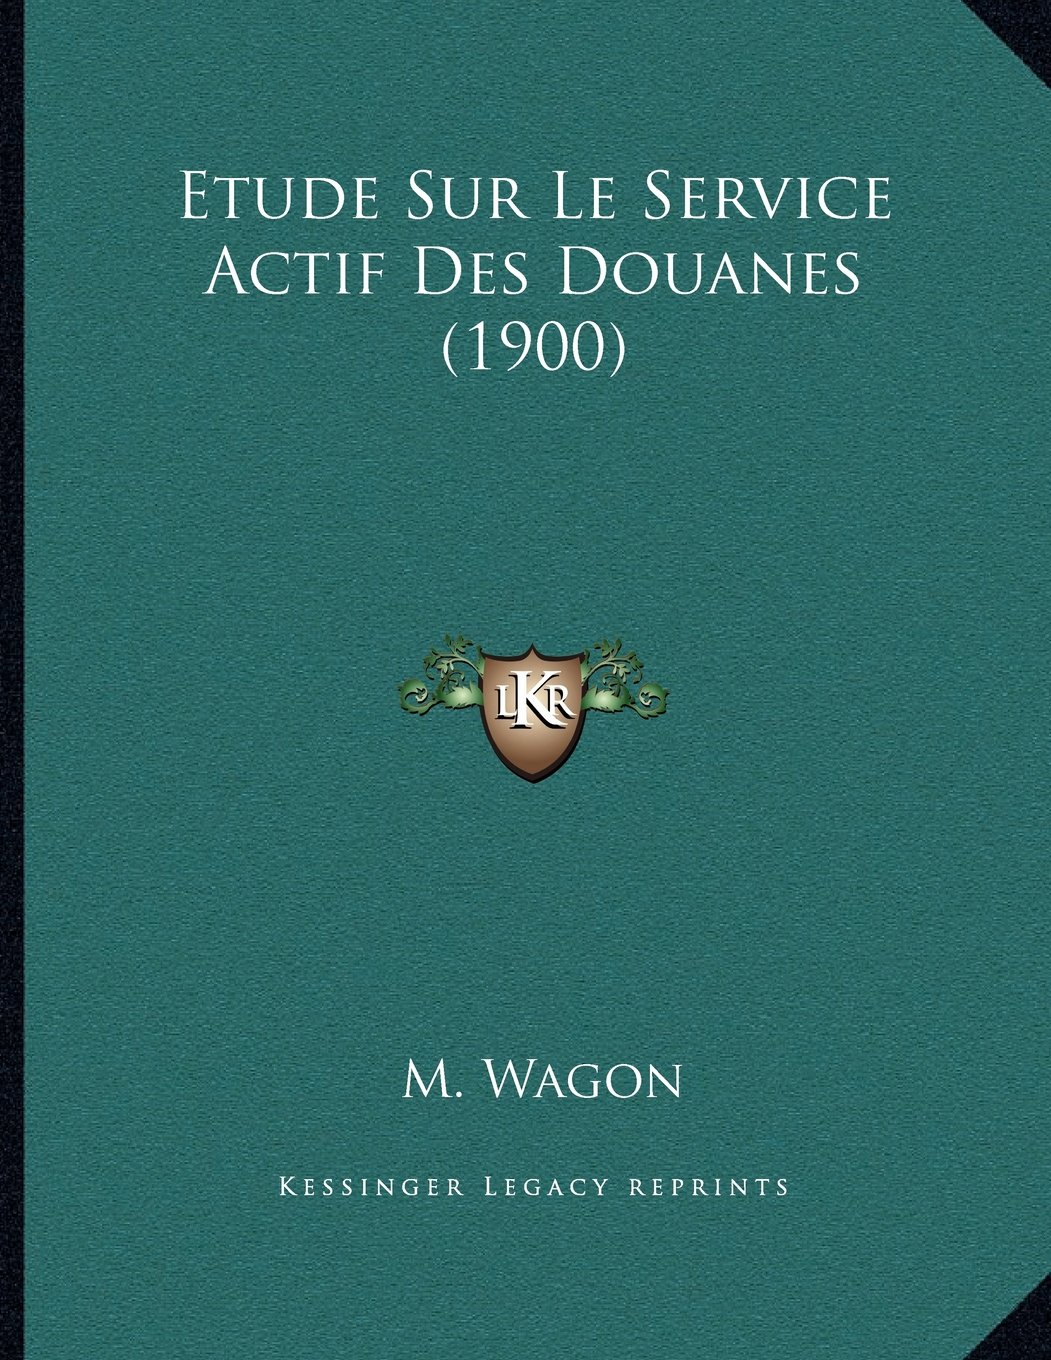 Download Etude Sur Le Service Actif Des Douanes (1900) (French Edition) pdf epub